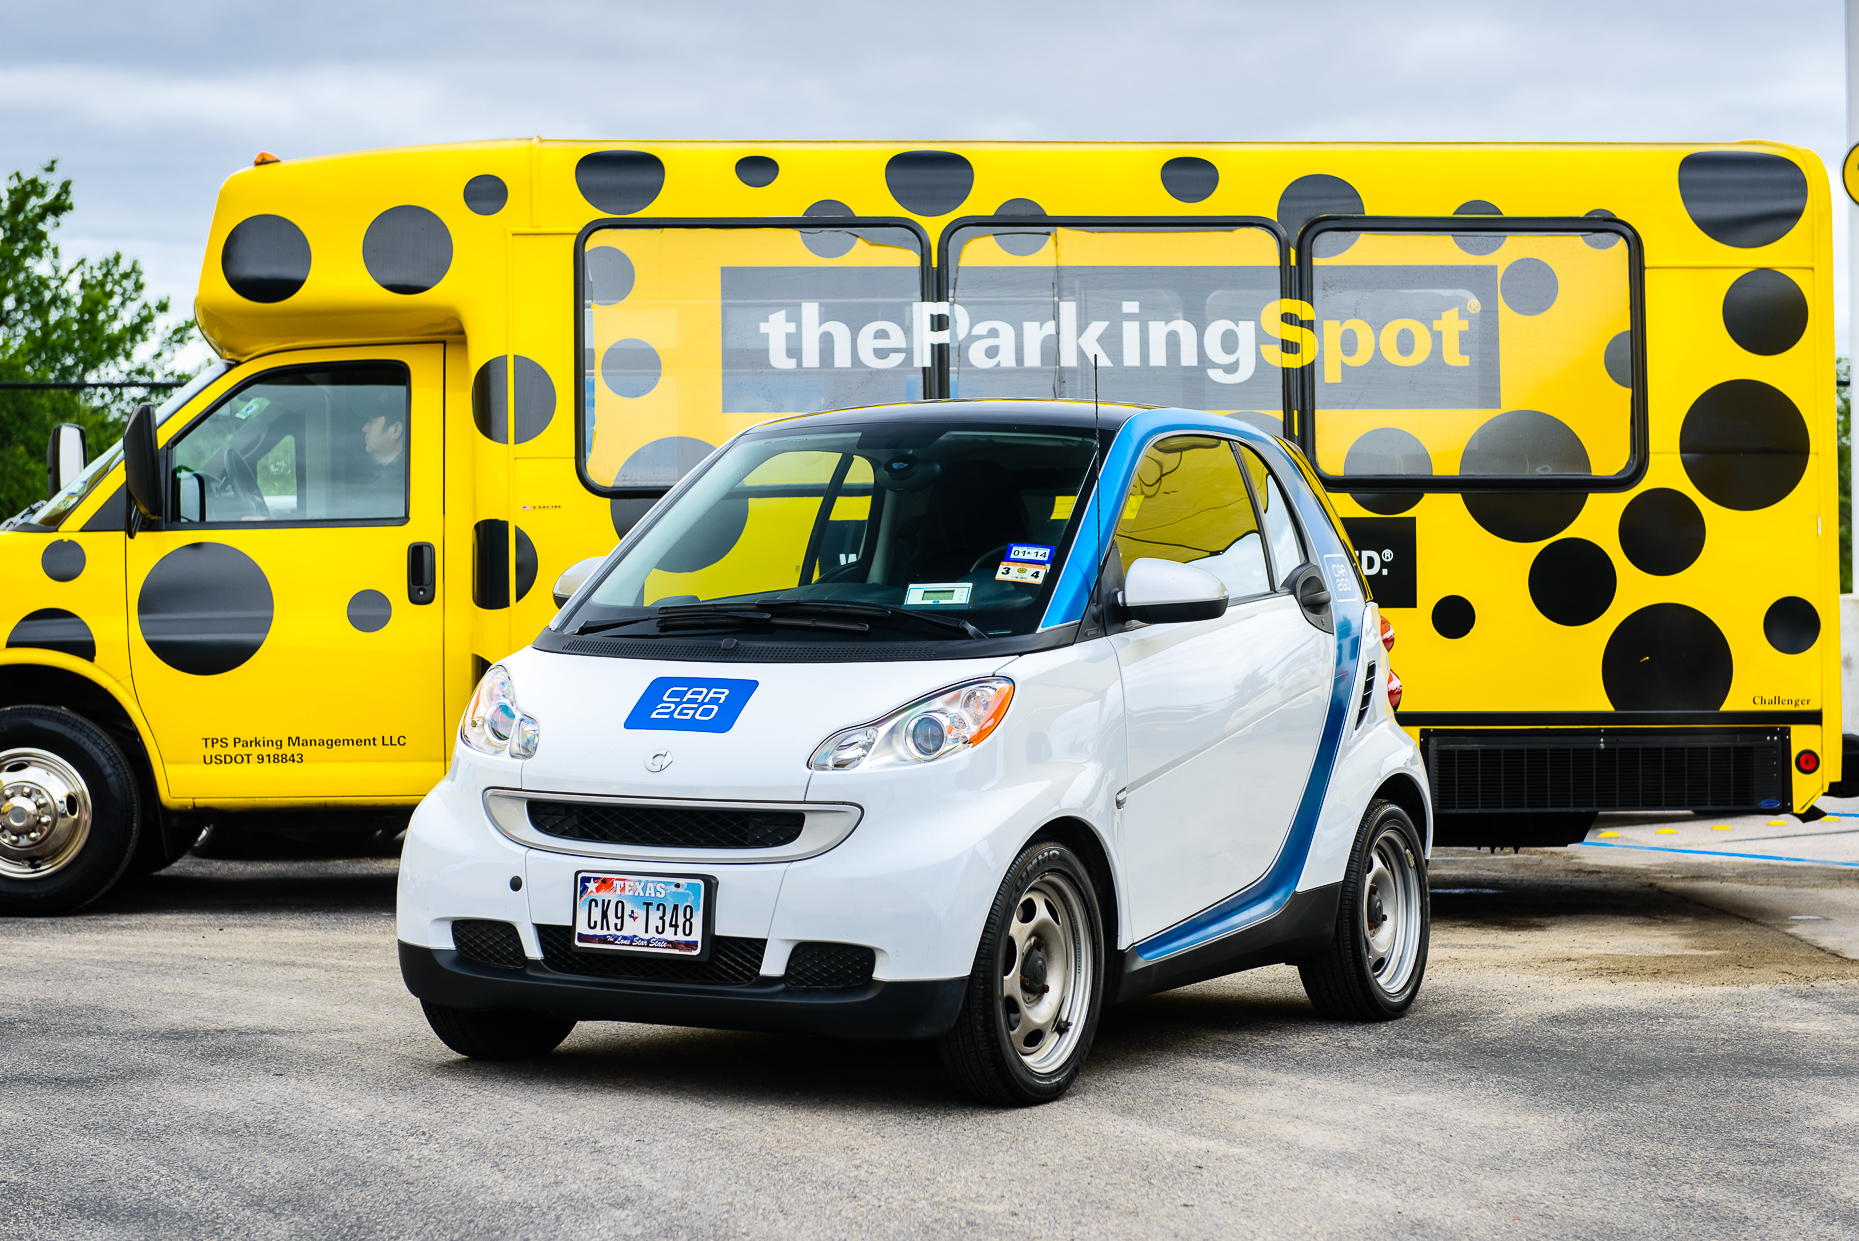 Austin-Commercial-Photographer-Product-car2go-Parking-Spot